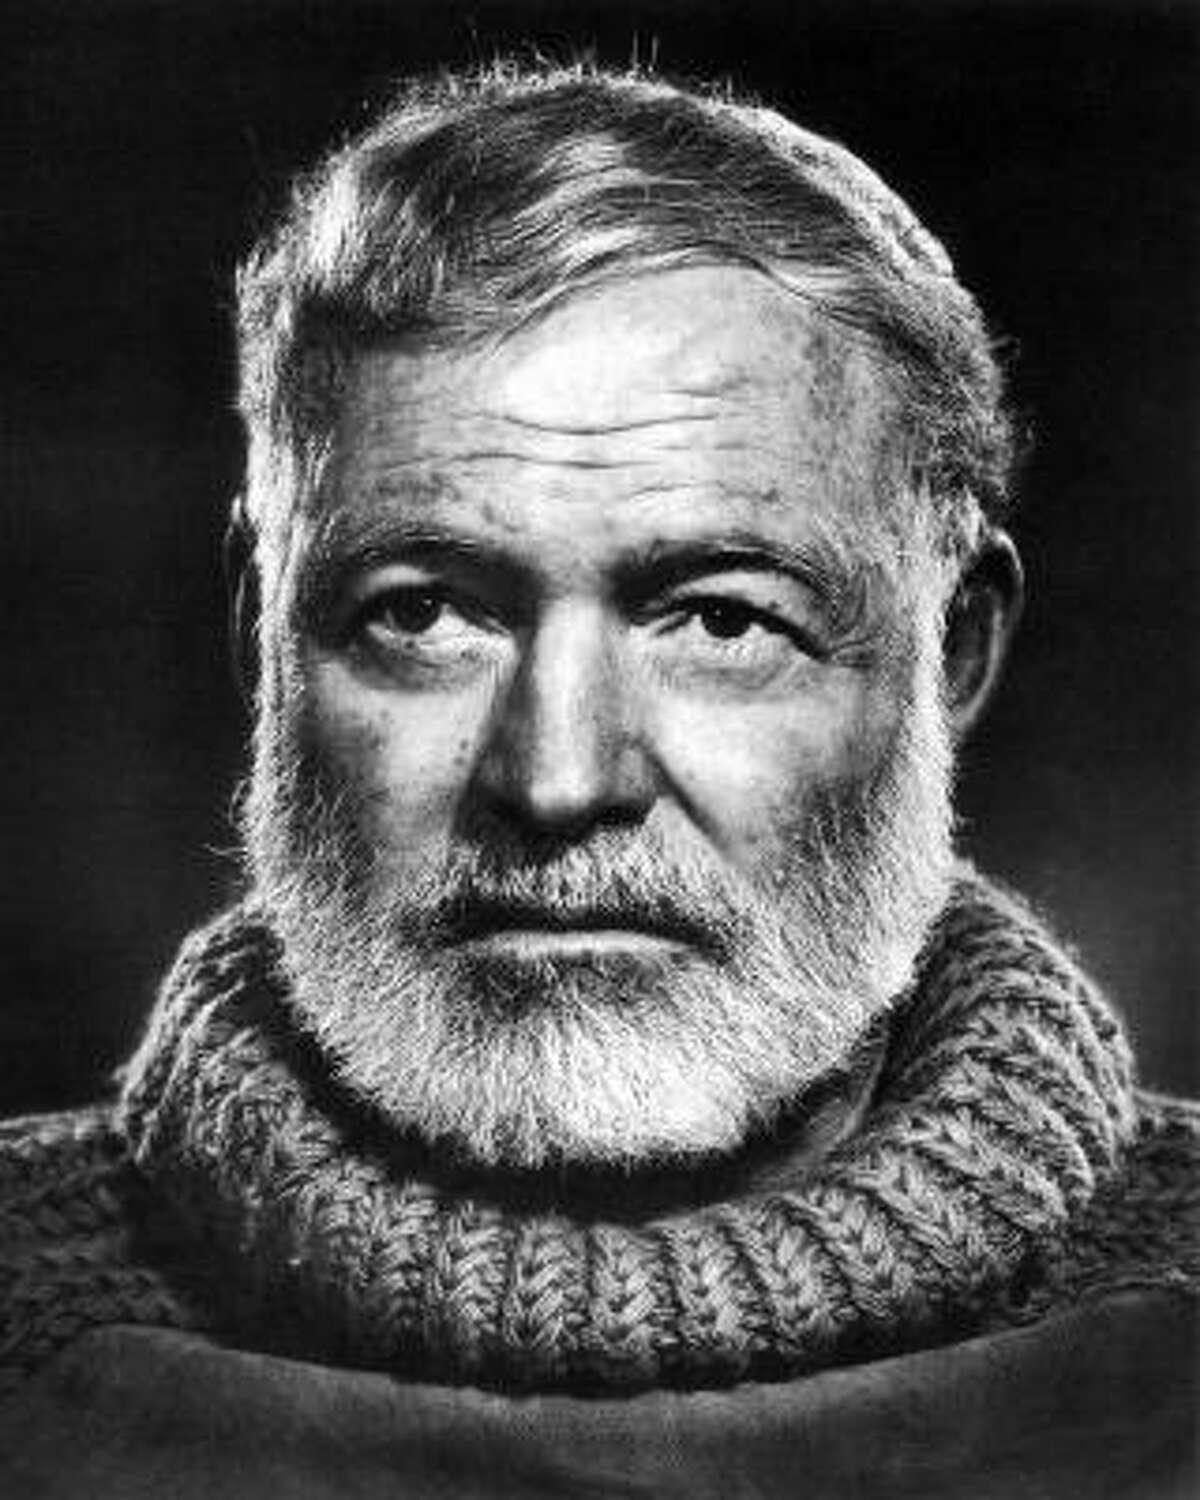 Ernest Hemingway: Can't you just smell the manly sweat in that sweater?